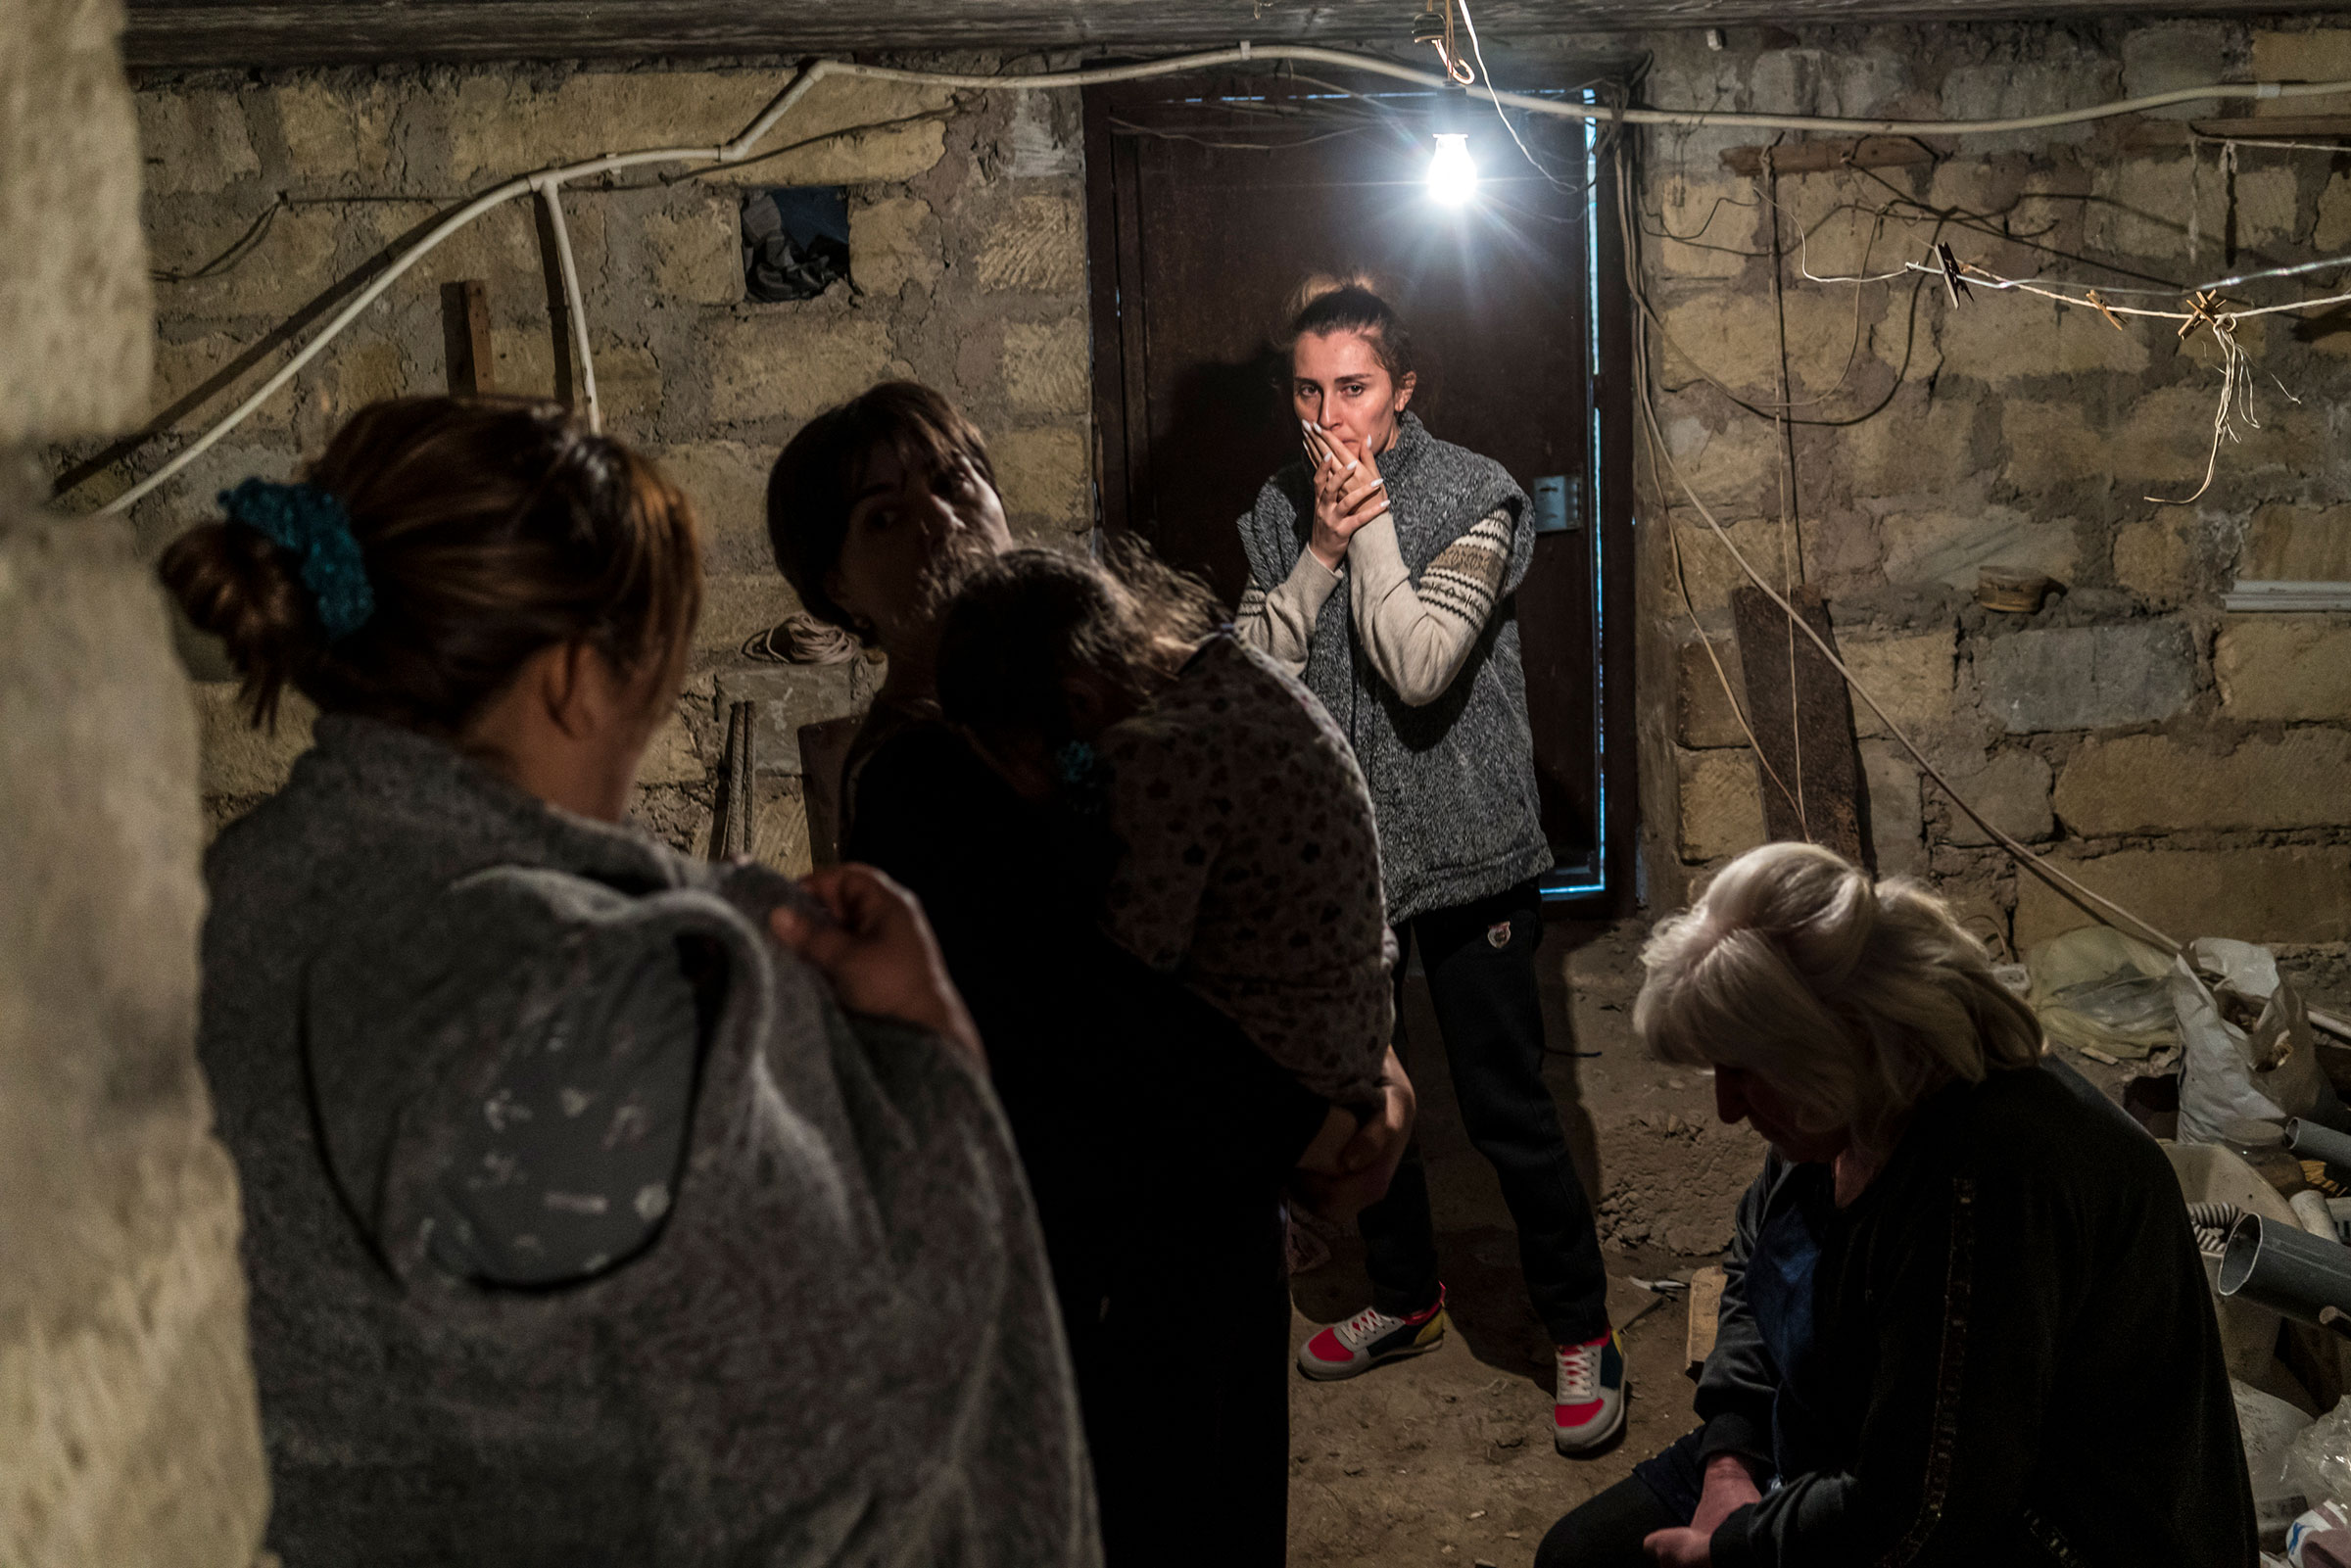 Residents shelter in a basement as air raid sirens sound on Sept. 29, 2020 in Stepanakert, Nagorno-Karabakh.